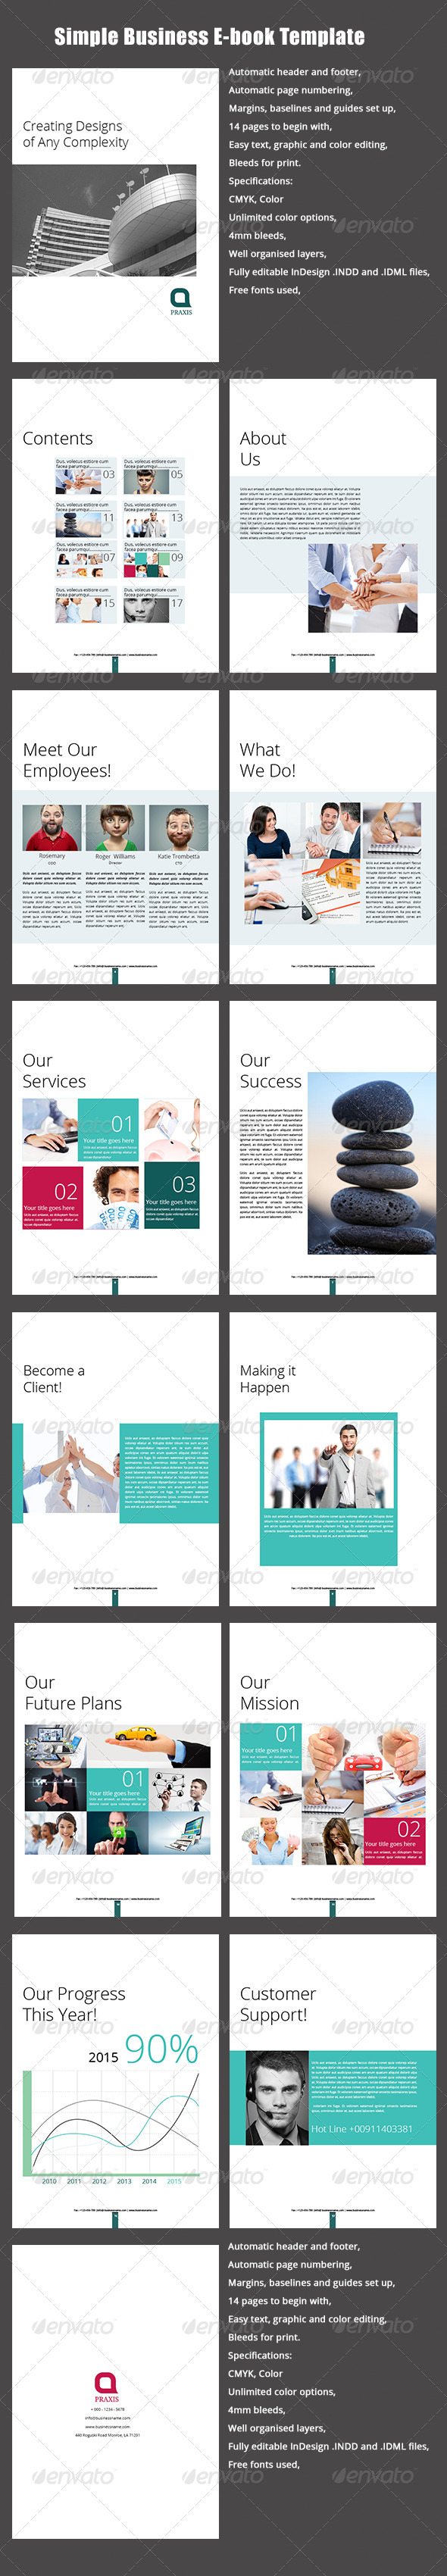 Simple Business E-book Template